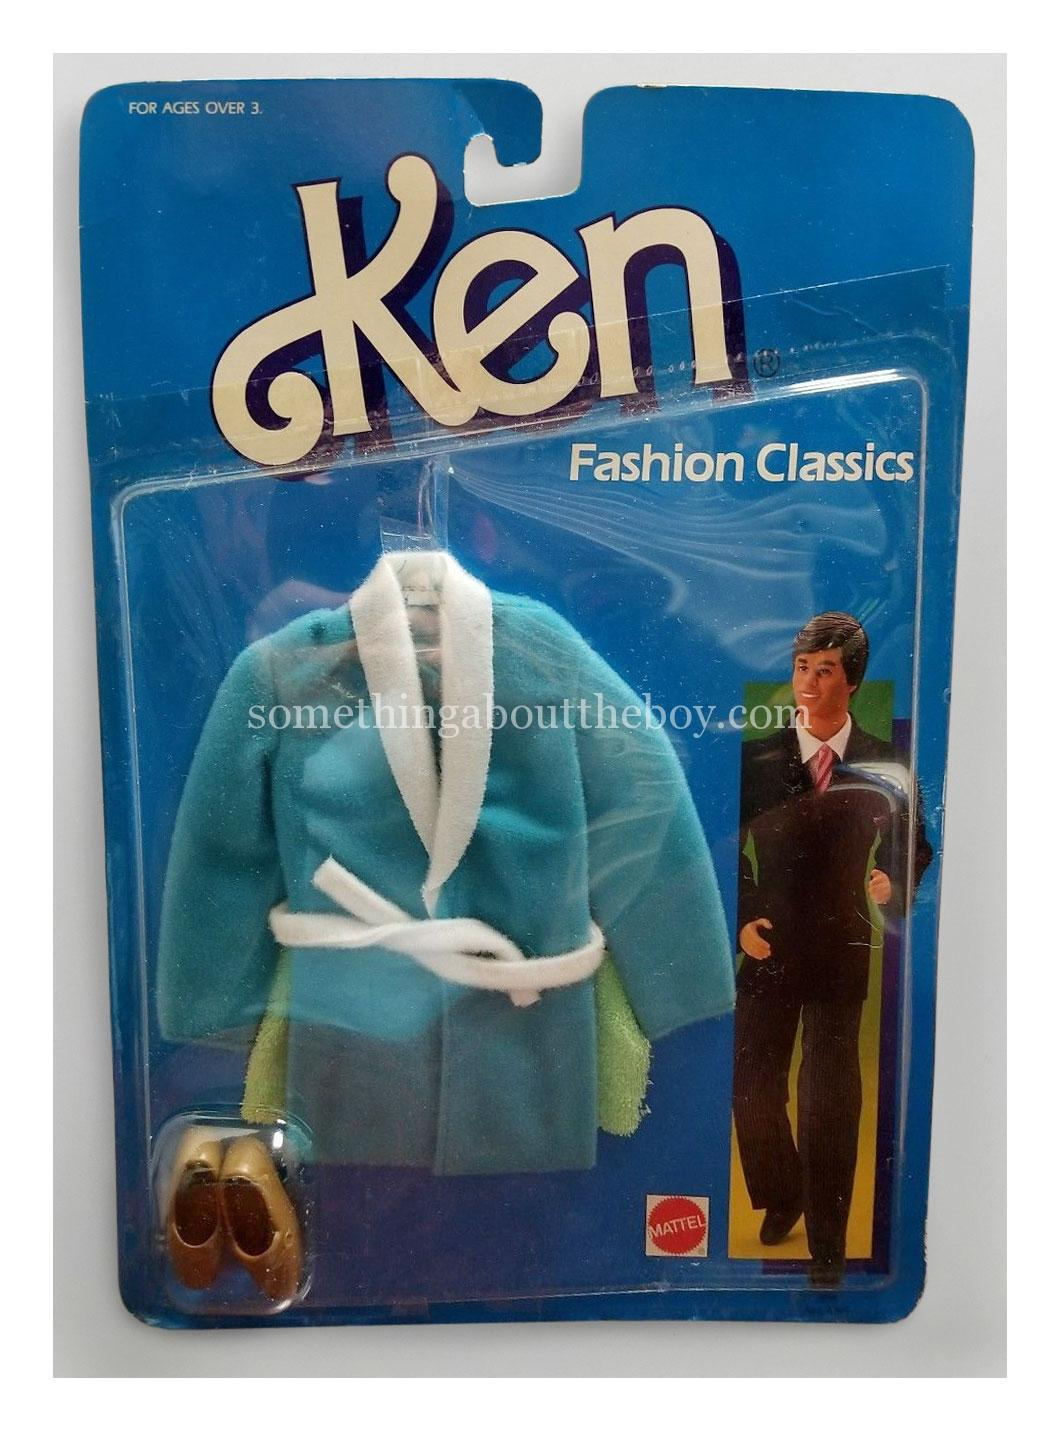 1986-87 Kmart Fashion Classics #2894 in original packaging